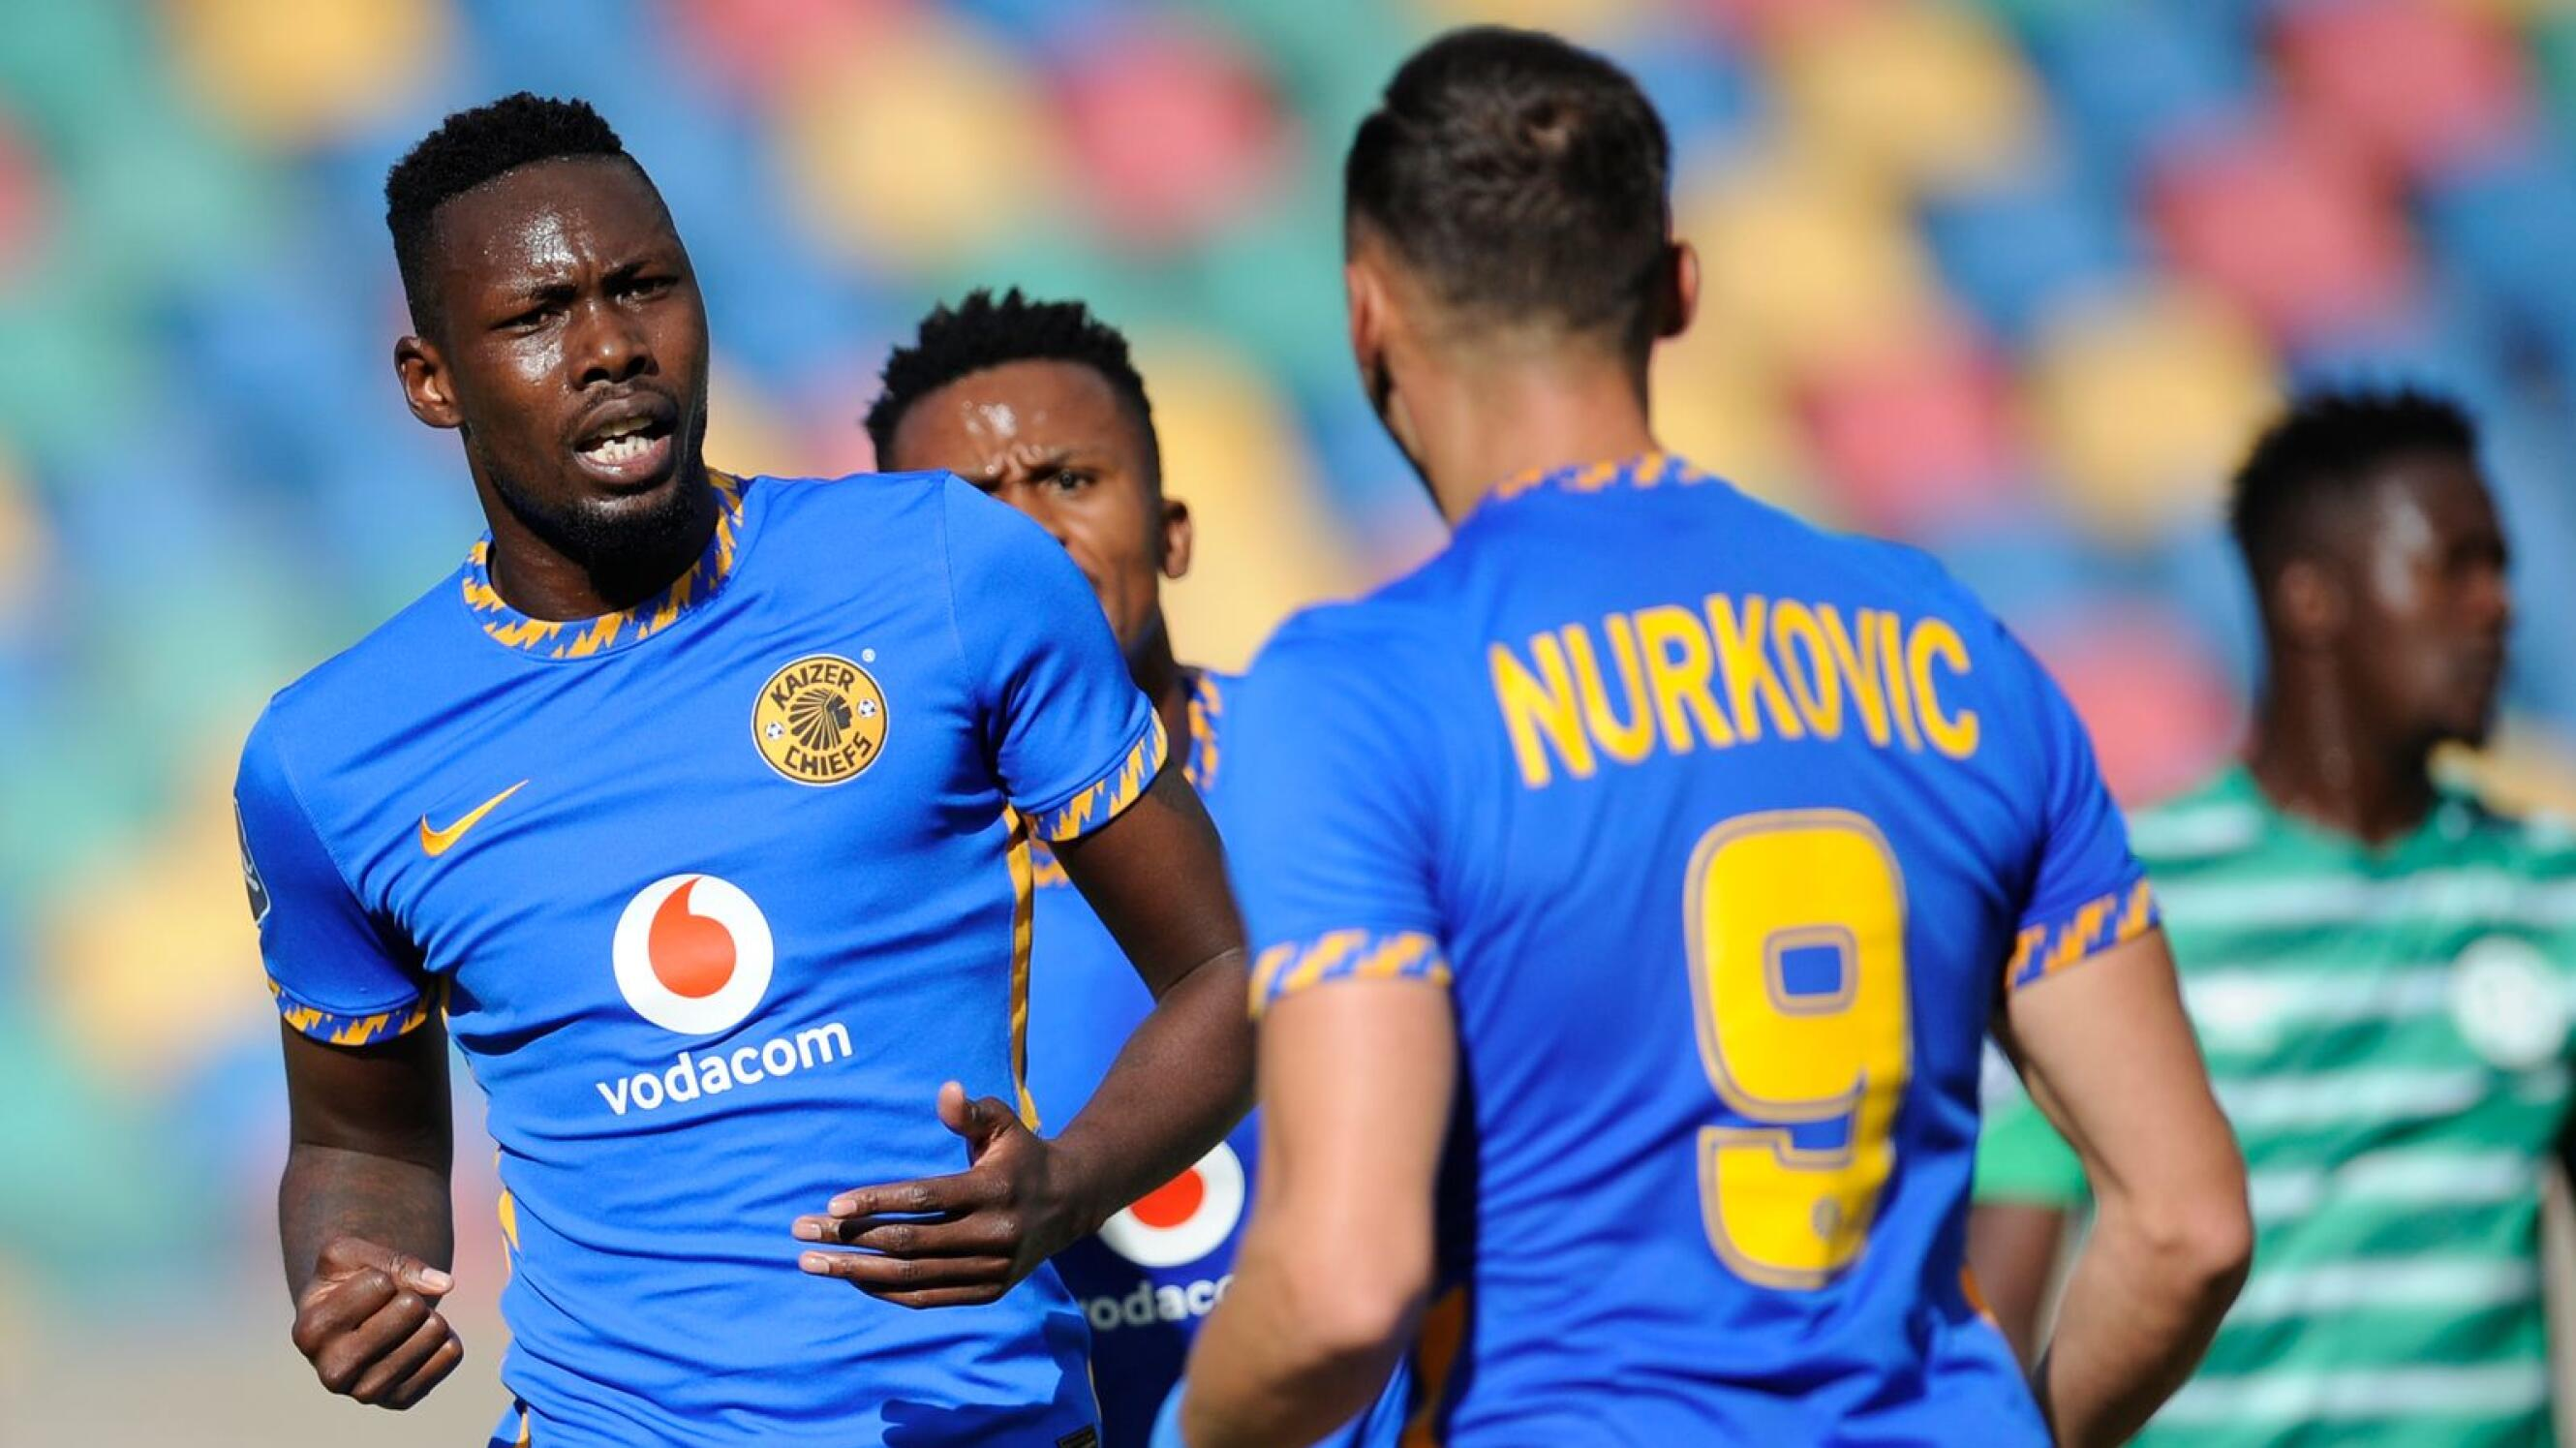 Erick Mathoho and Samir Nurkociv will be key for Kaizer Chiefs when they take on Al Ahly in the Caf Champions League final on Saturday